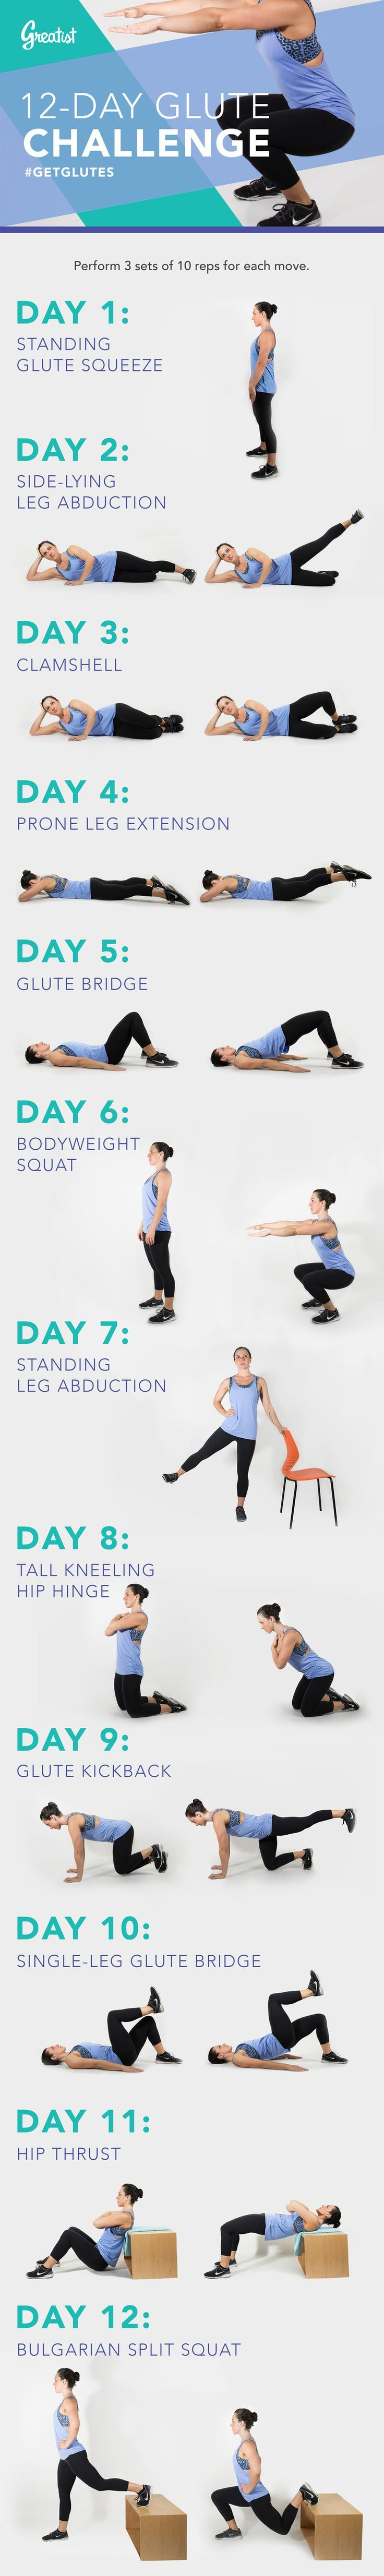 Join Greatist's 12-Day Glute Challenge — Are you ready to #getglutes? Join our 12-day challenge to build strong glutes that will help you throughout your everyday activities! #glutes #workout #fitness #exercises #greatist